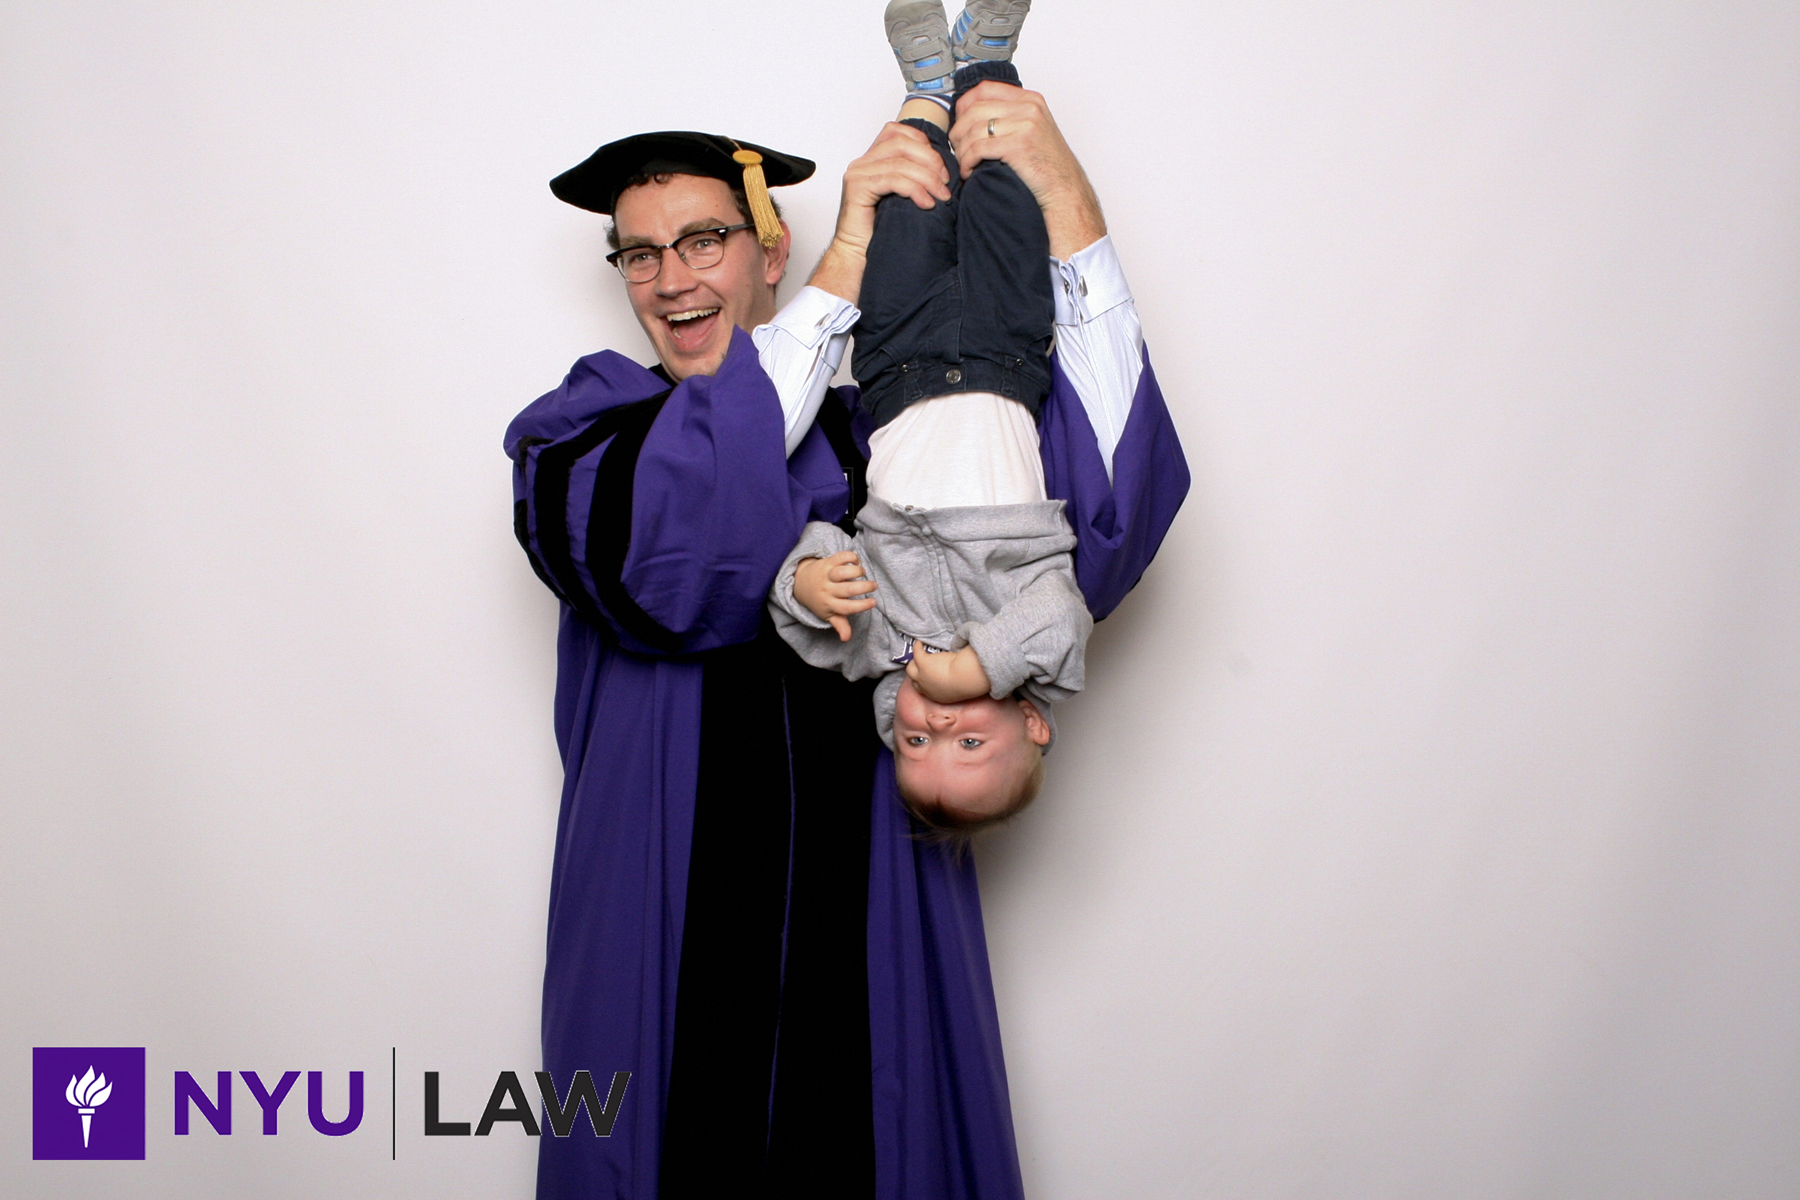 NYU Law Father's Day 2014 father